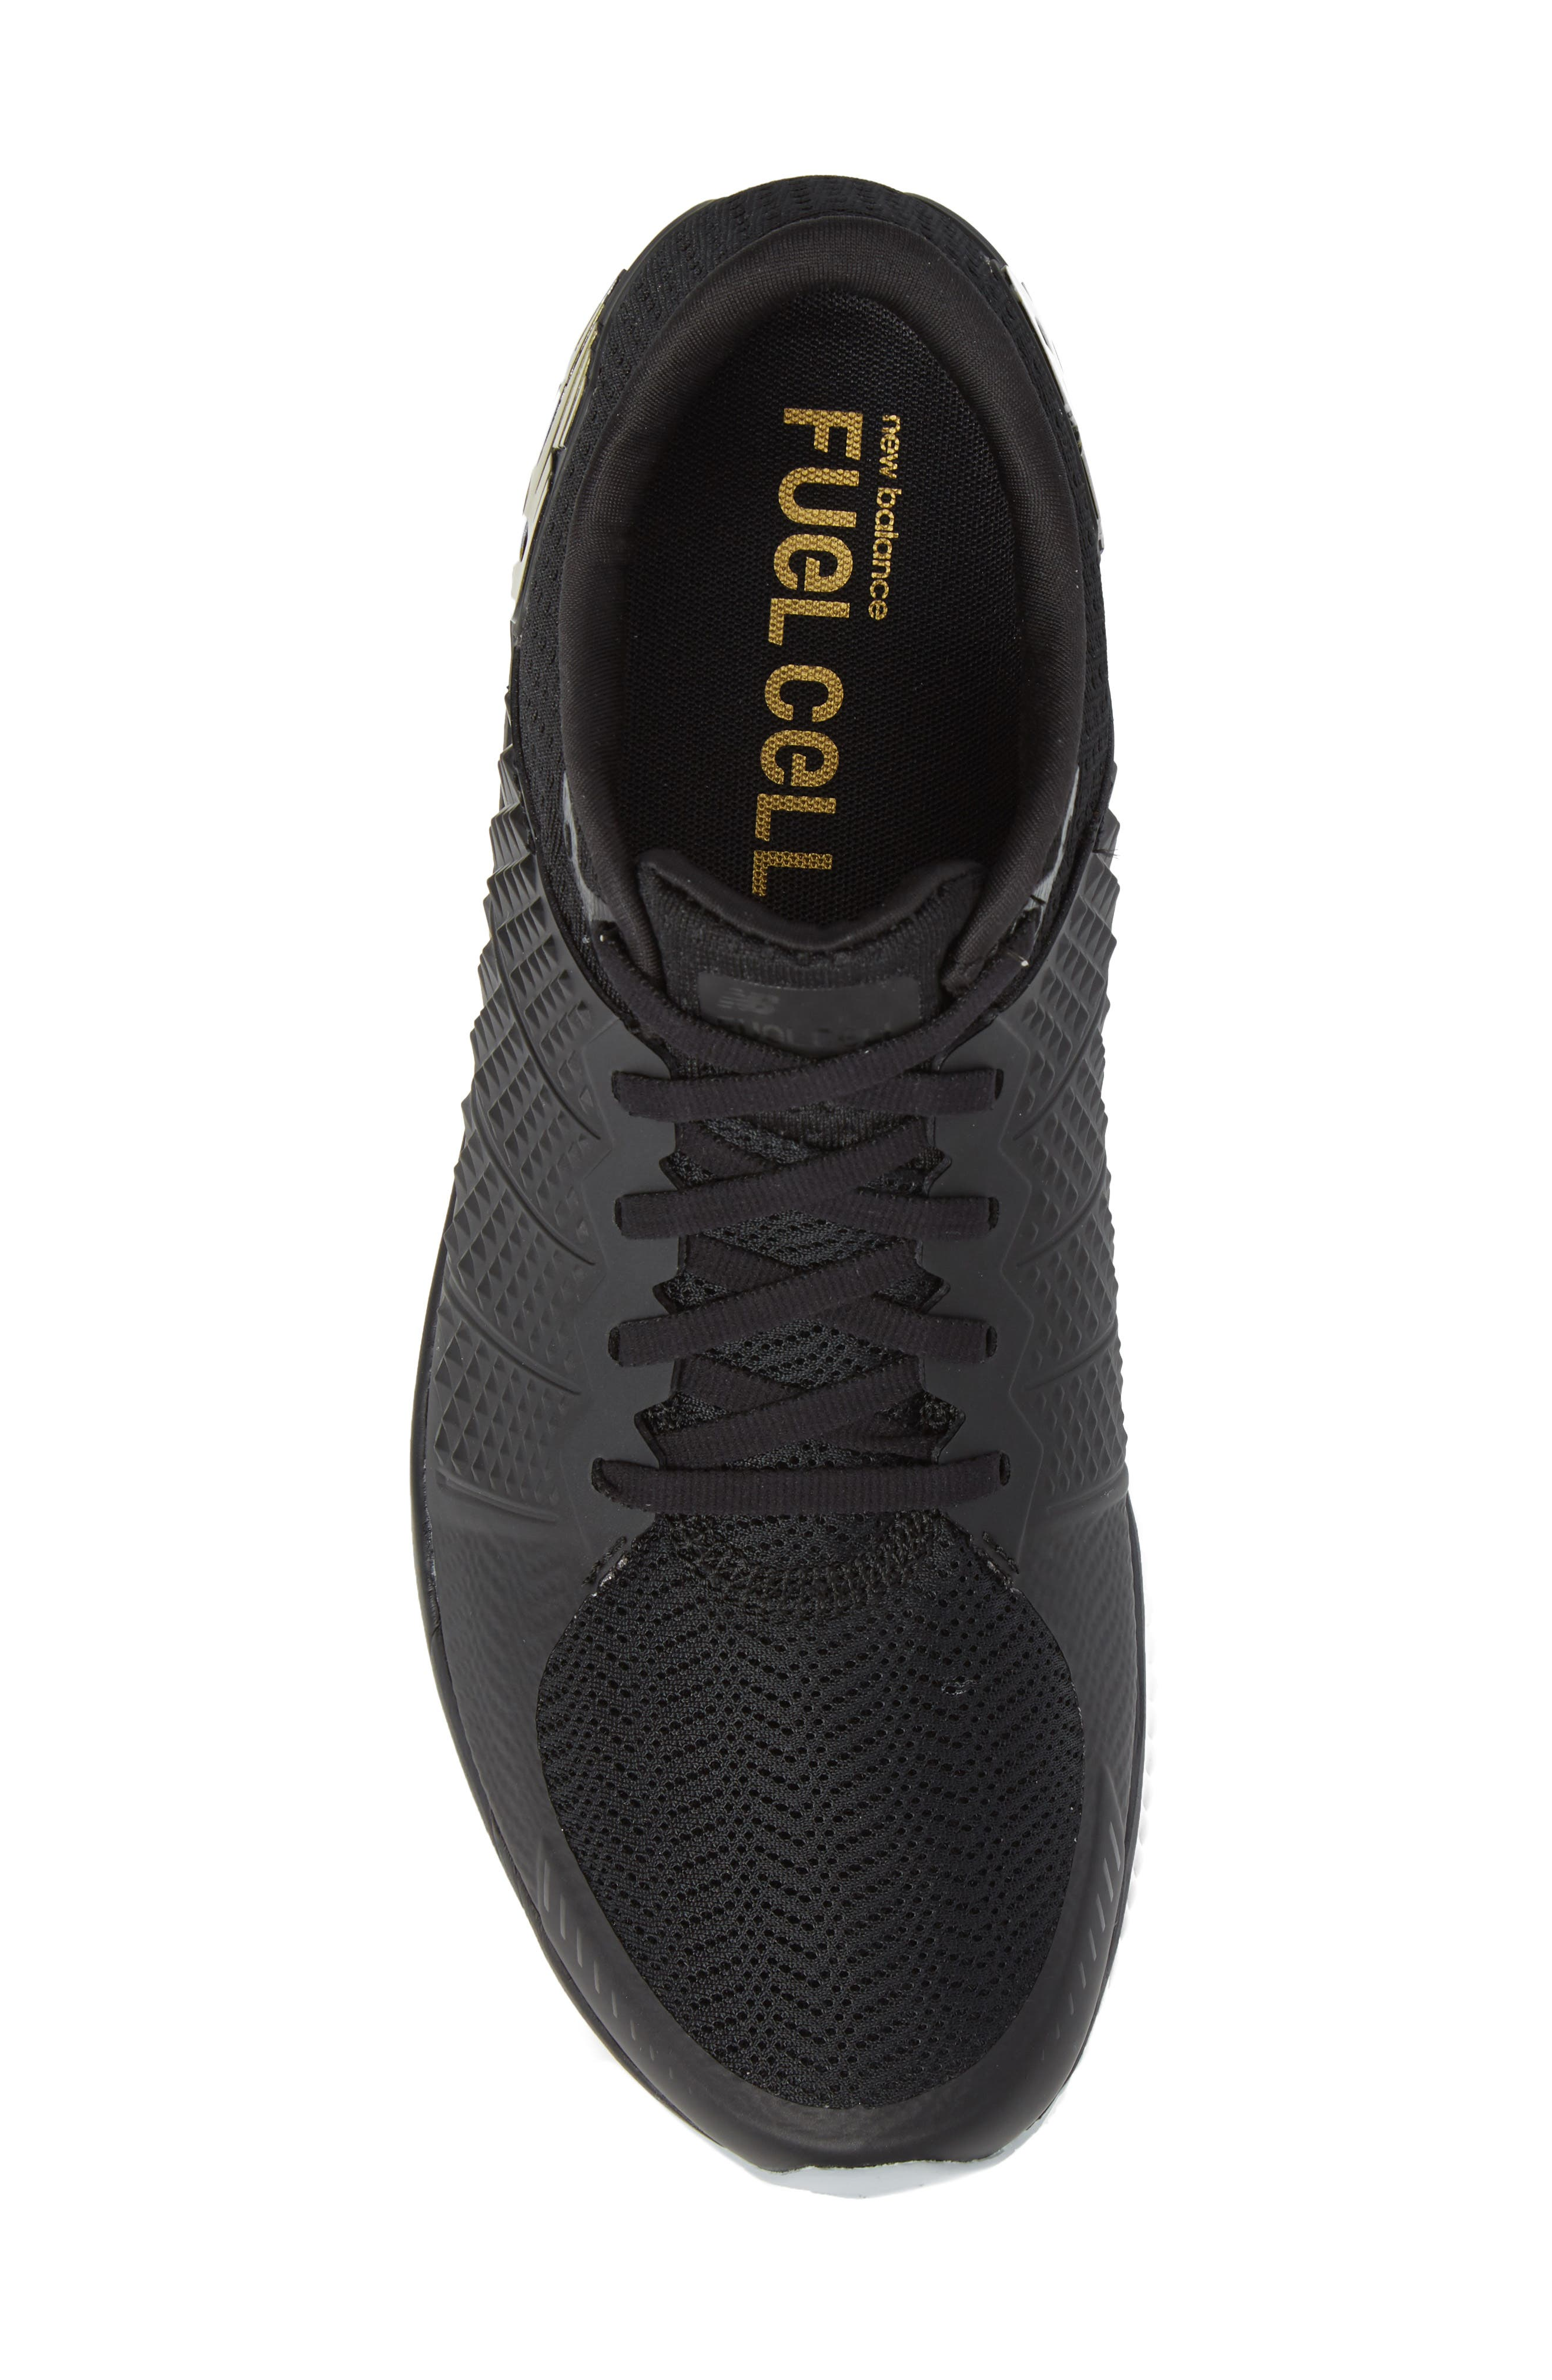 Vazee Fuel Cell Running Shoe,                             Alternate thumbnail 5, color,                             001